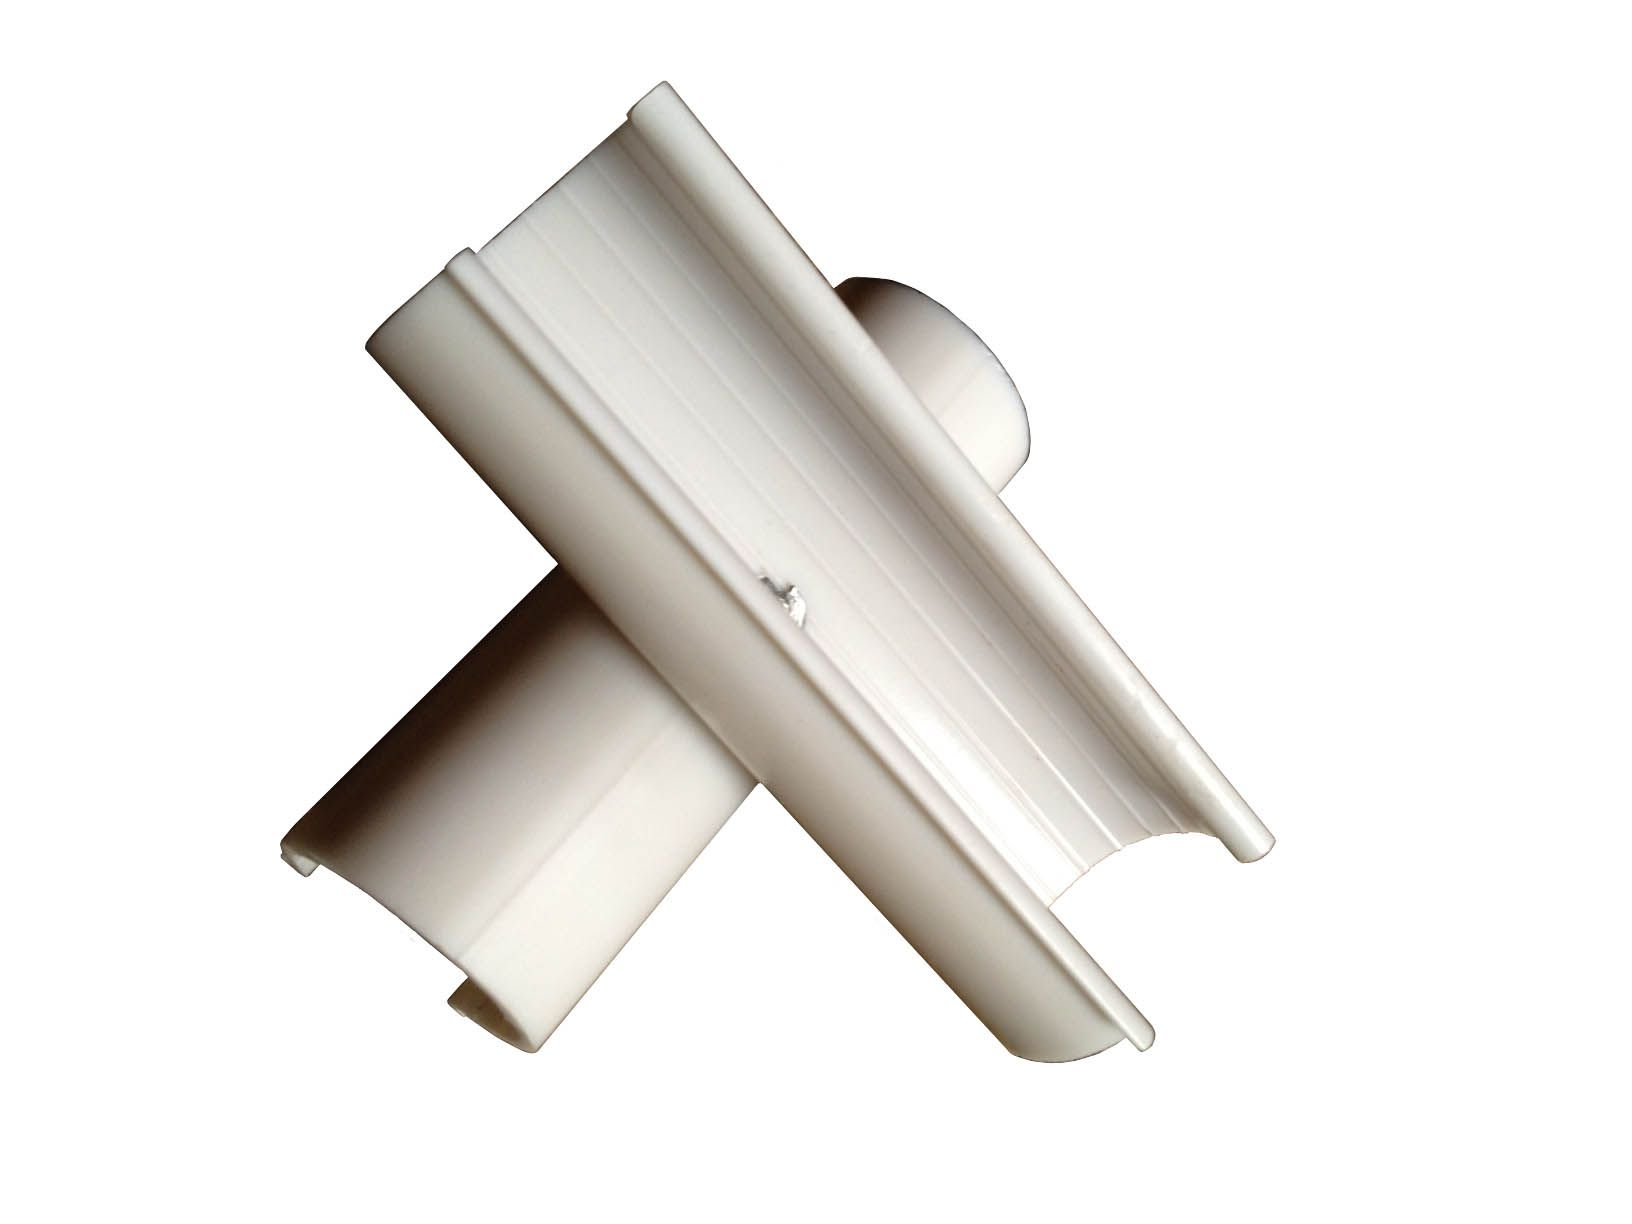 greenhouse tube clamps pack of 4 for 1//2 furniture grade PVC pipe